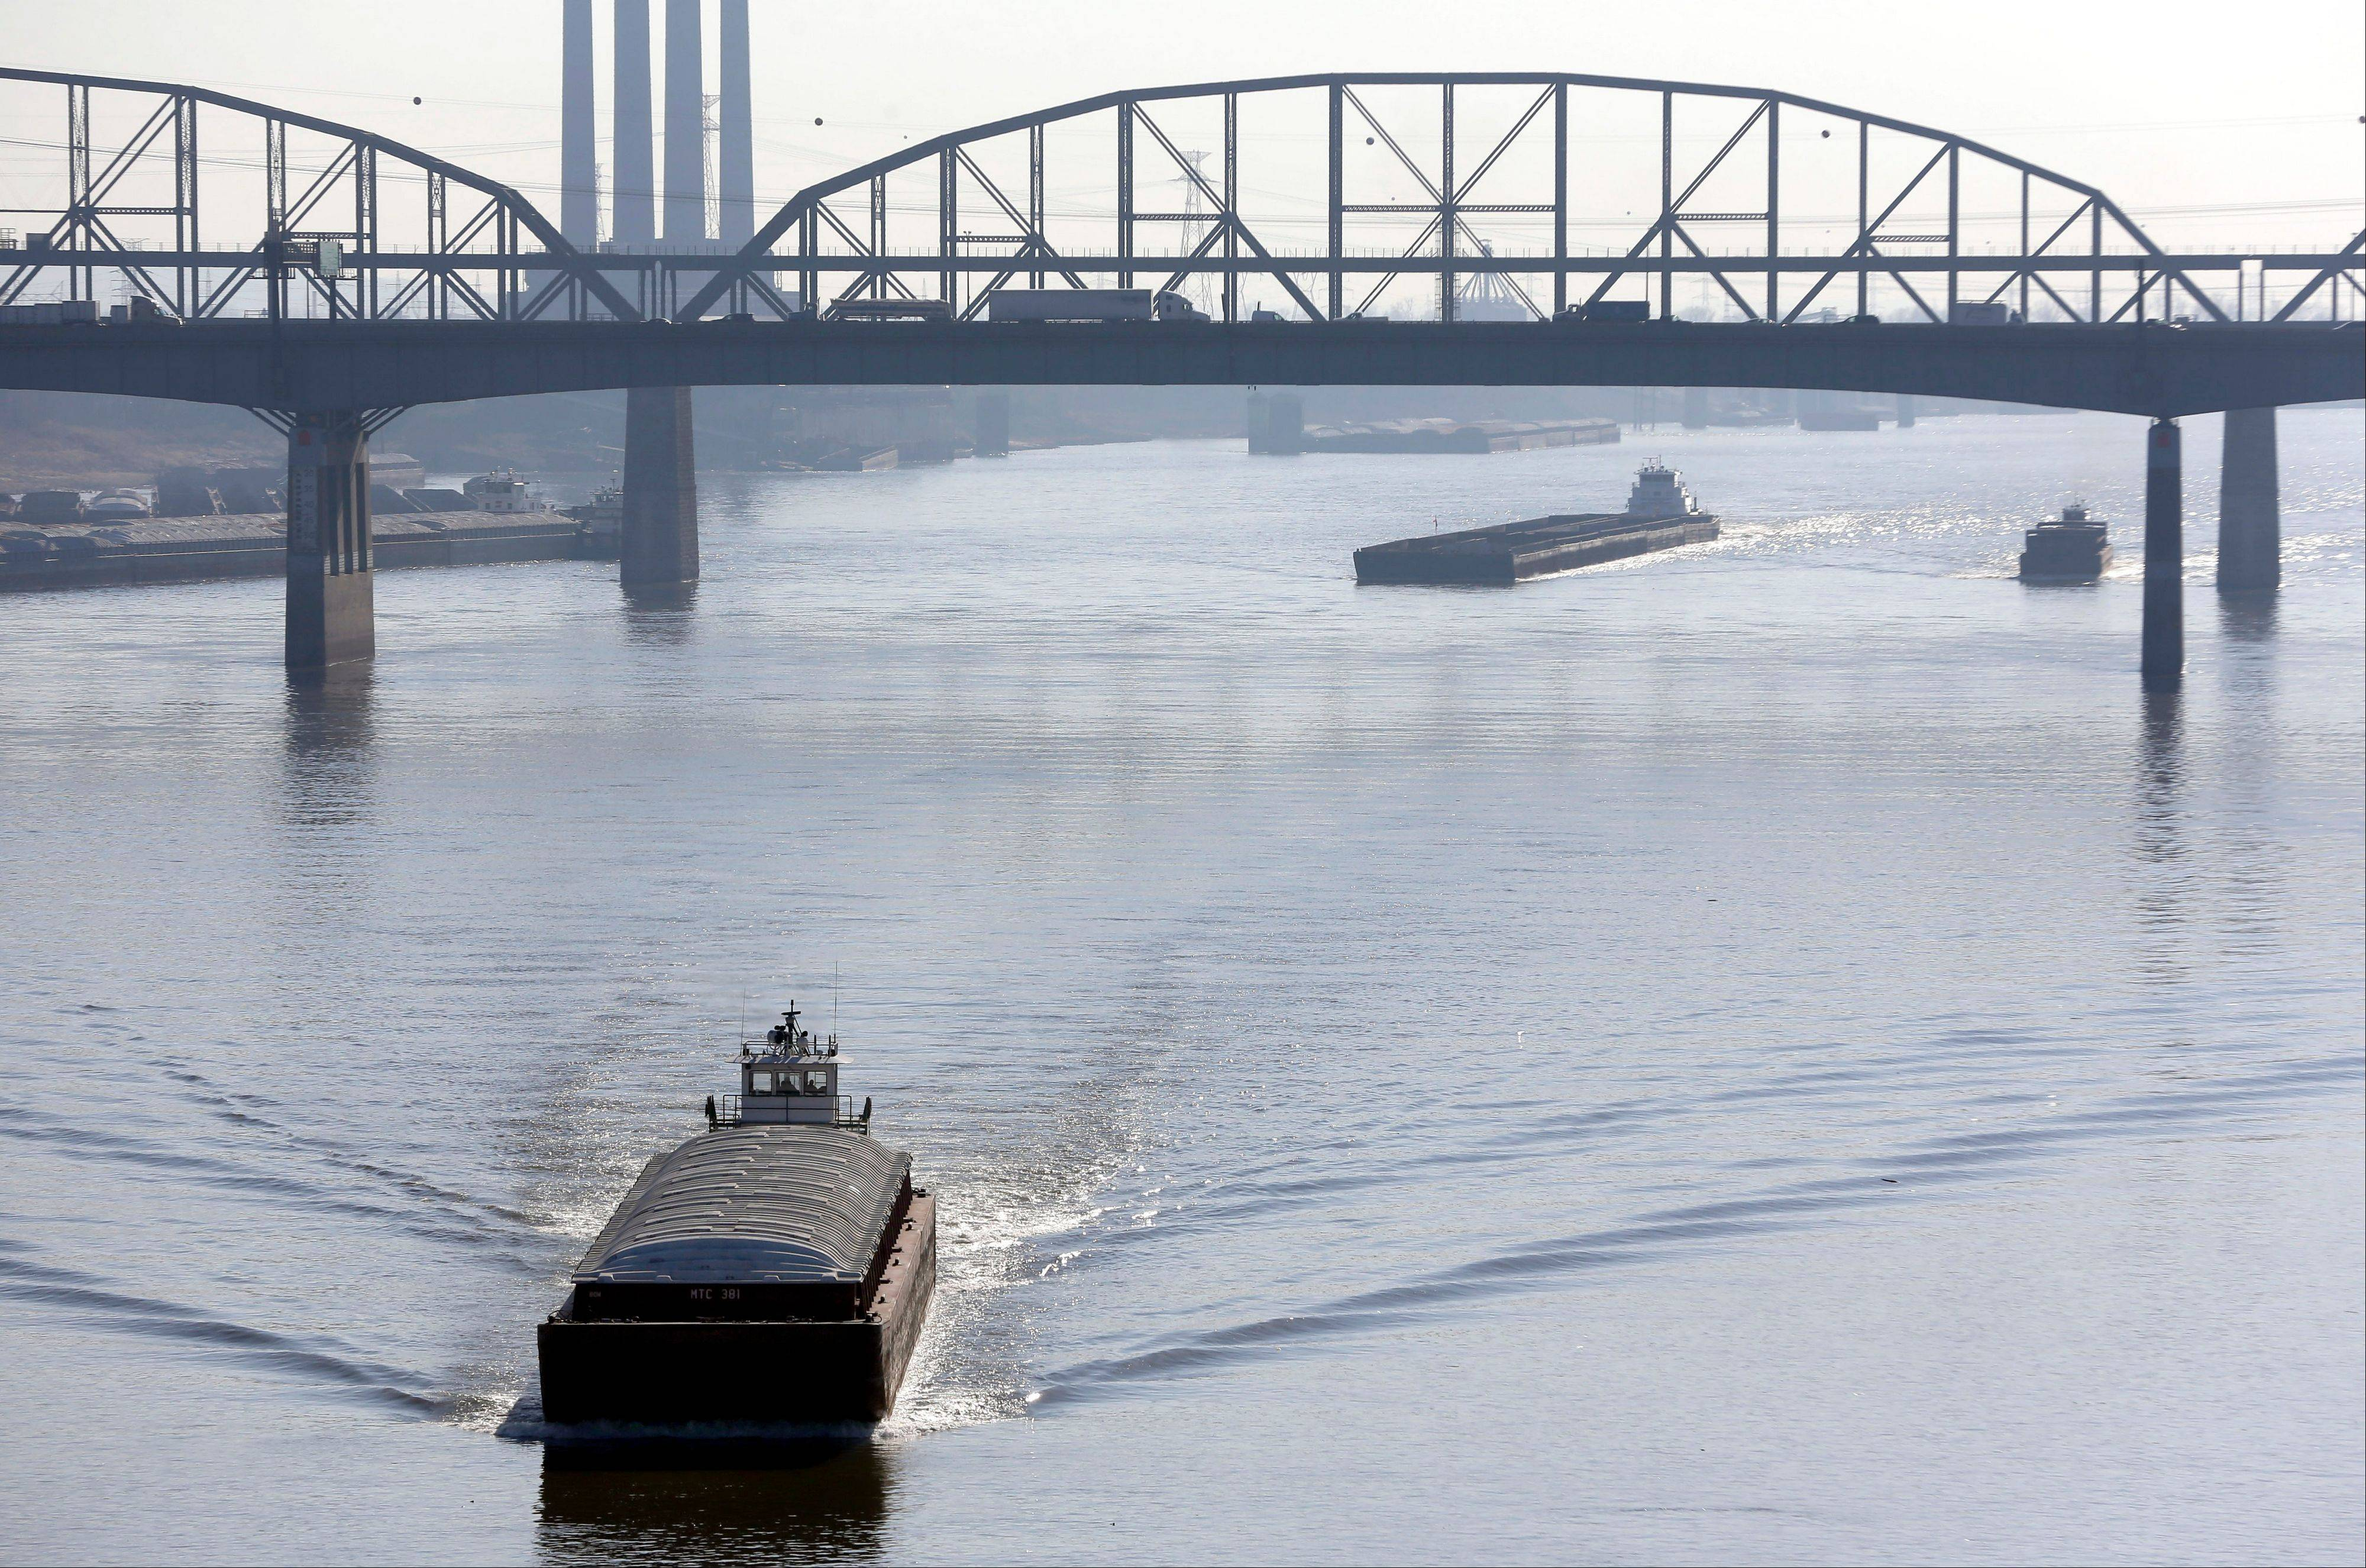 Barges power their way up the Mississippi River in St. Louis. The Army Corps of Engineers on Friday began reducing the flow from a Missouri River reservoir, a move expected to worsen low-water conditions on the Mississippi River and potentially bring barge traffic to a halt within weeks.